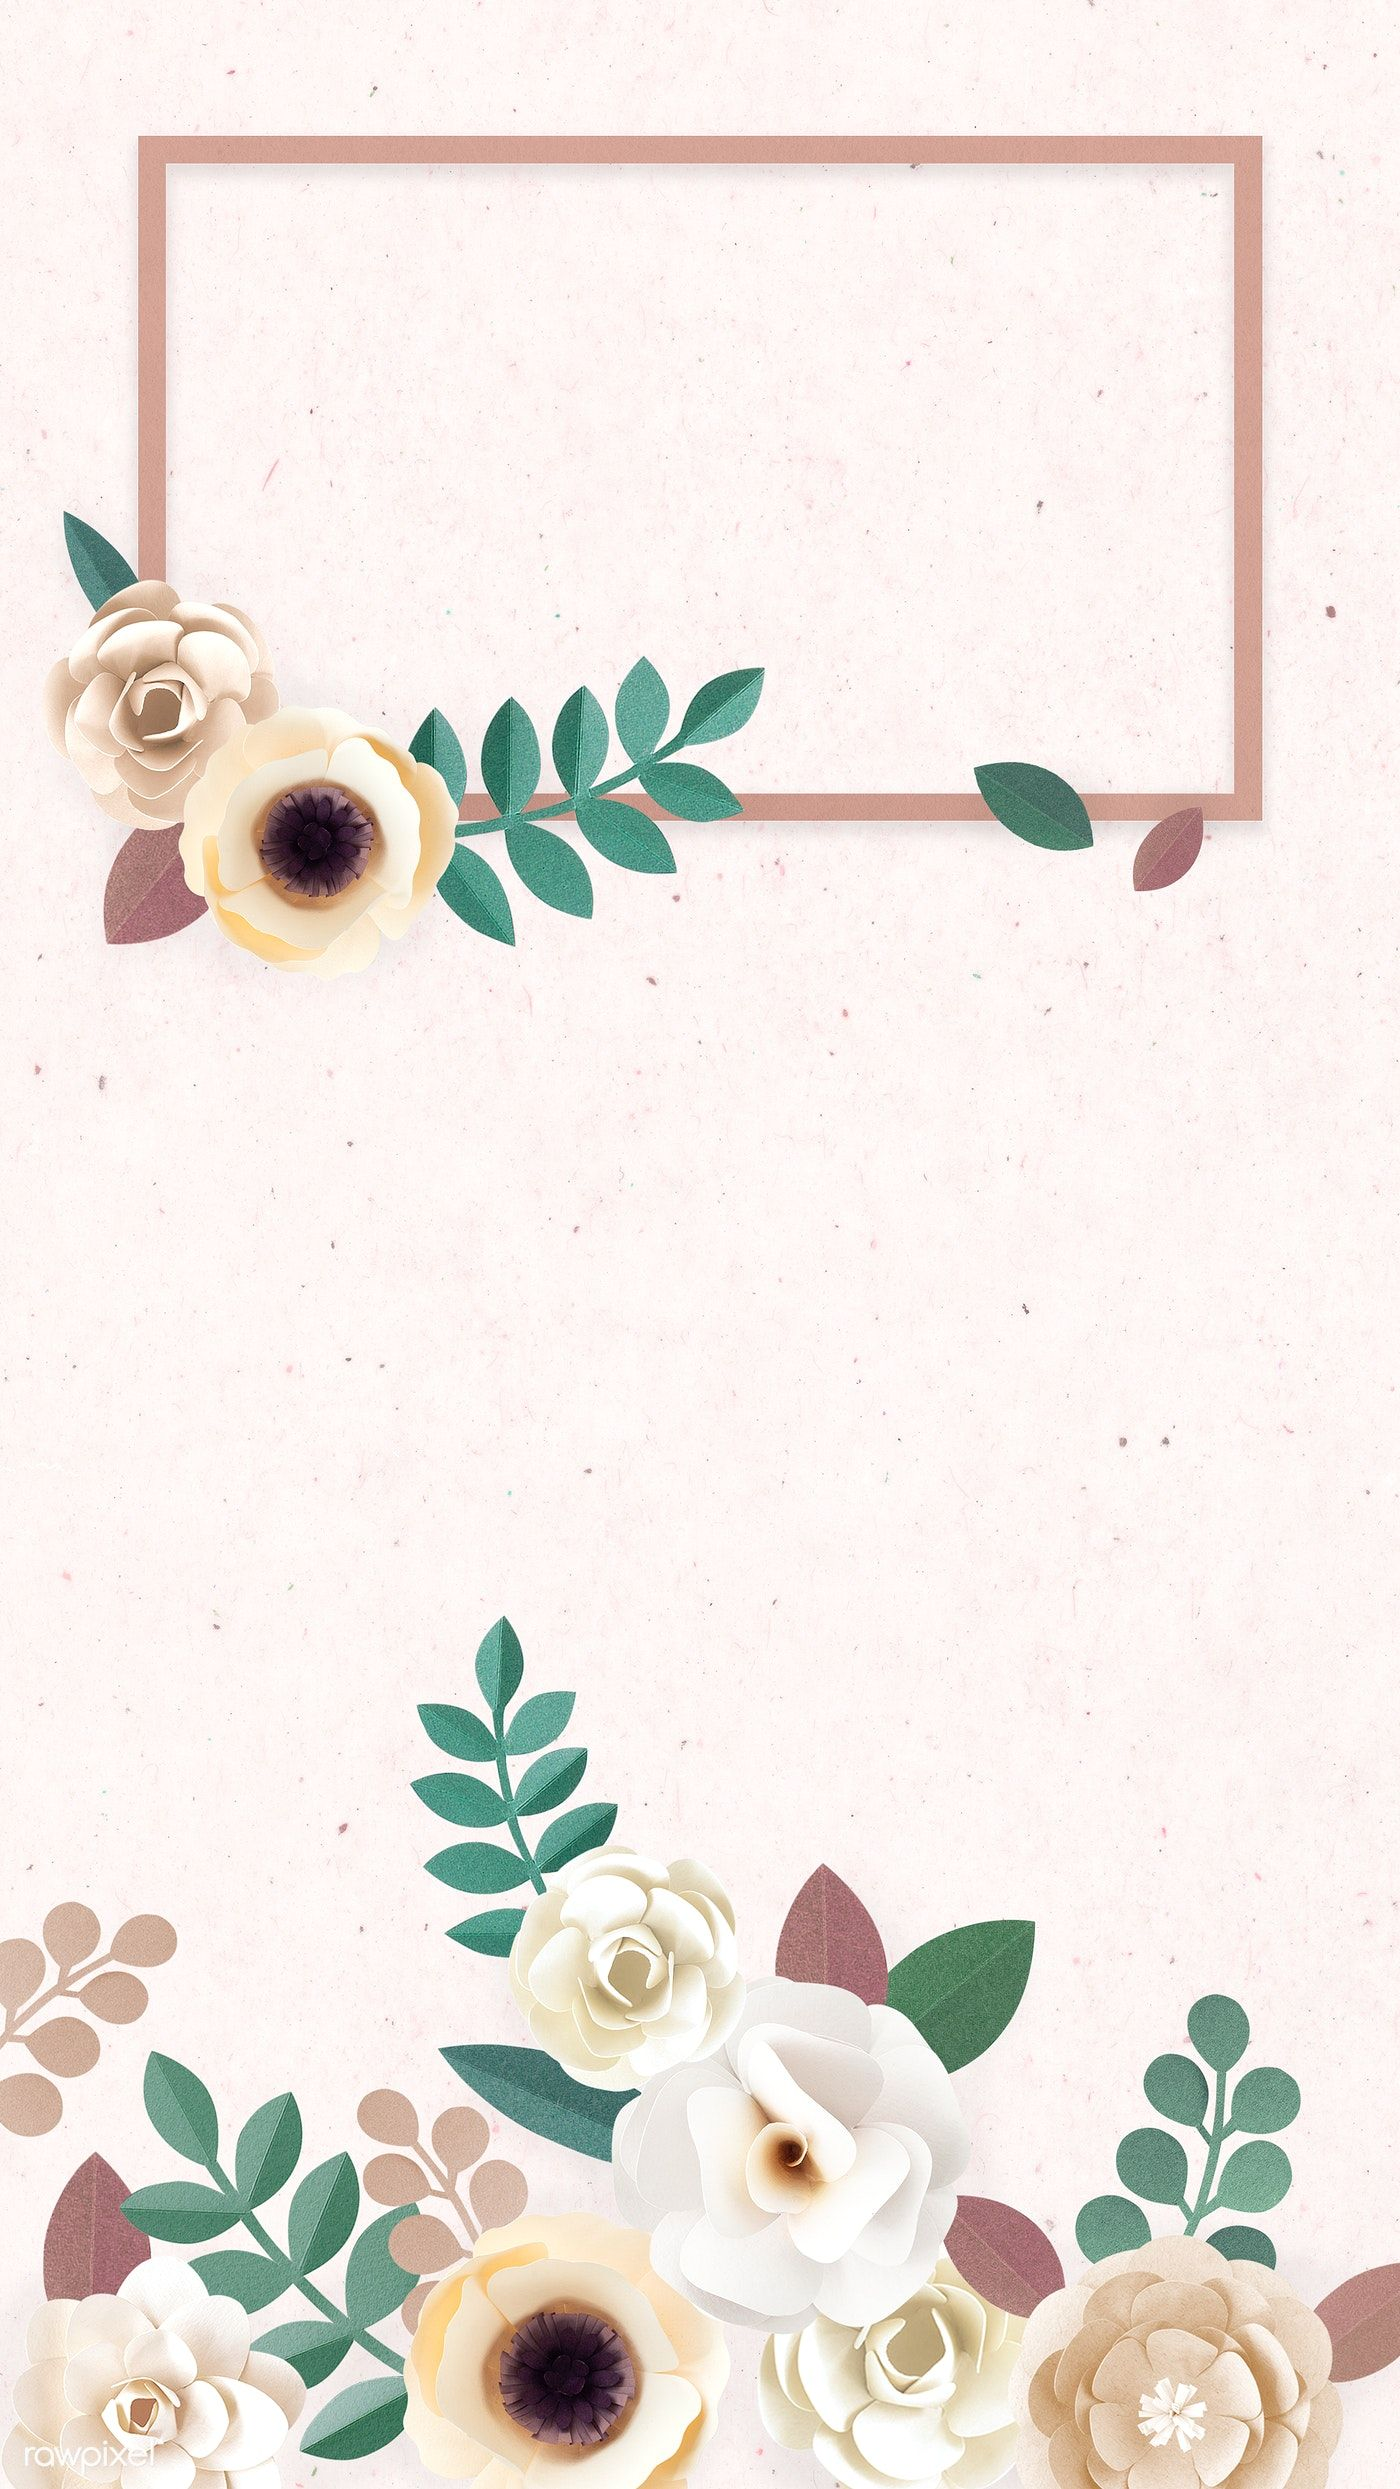 Download Premium Illustration Of Paper Craft Flower Element Card Template Flower Illustration Flower Background Wallpaper Flower Crafts